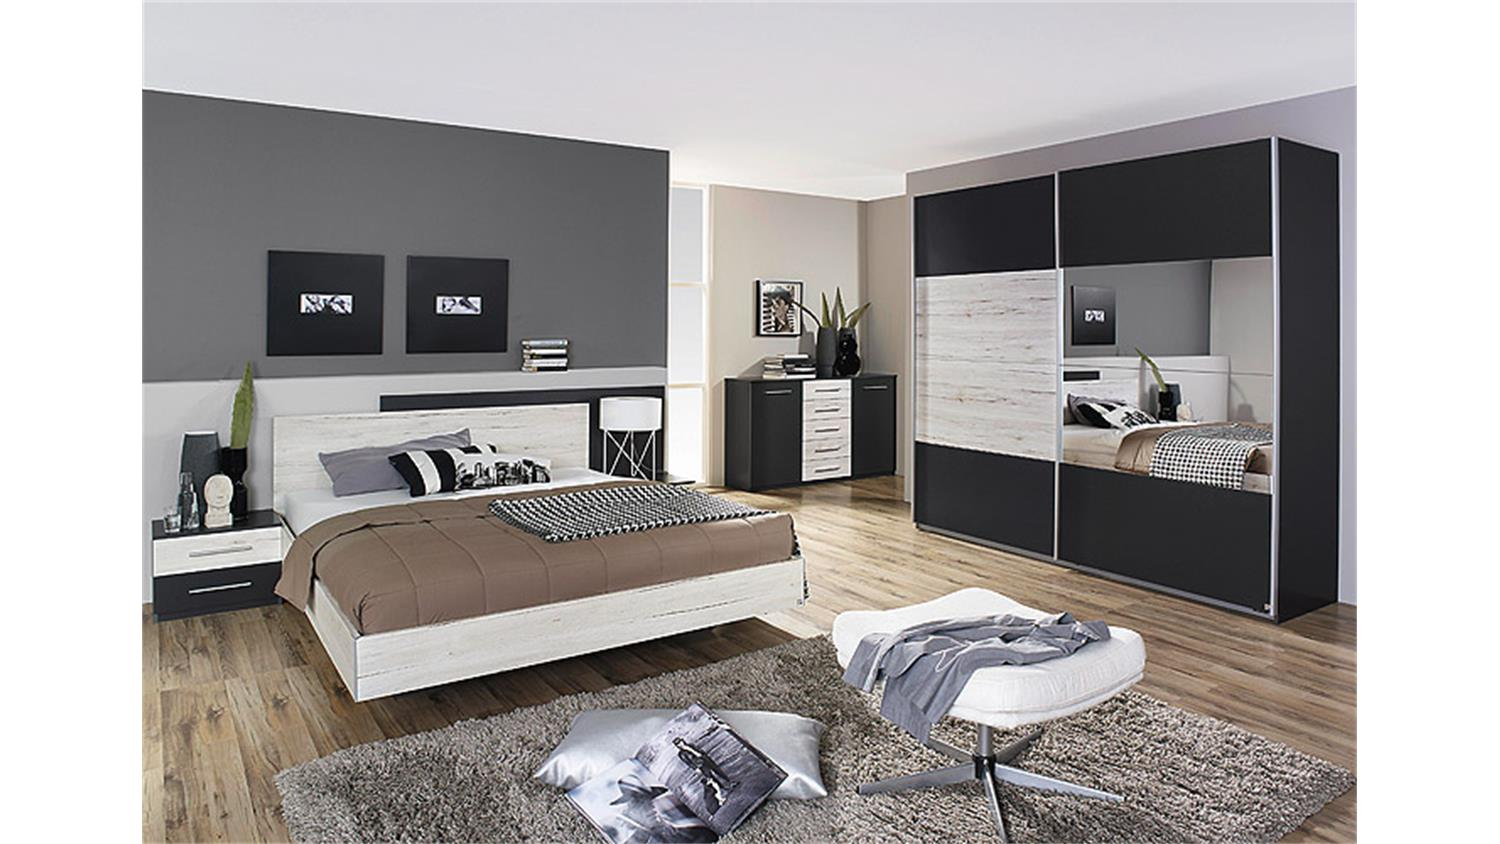 schlafzimmer 2 saragossa grau metallic eiche sanremo wei. Black Bedroom Furniture Sets. Home Design Ideas